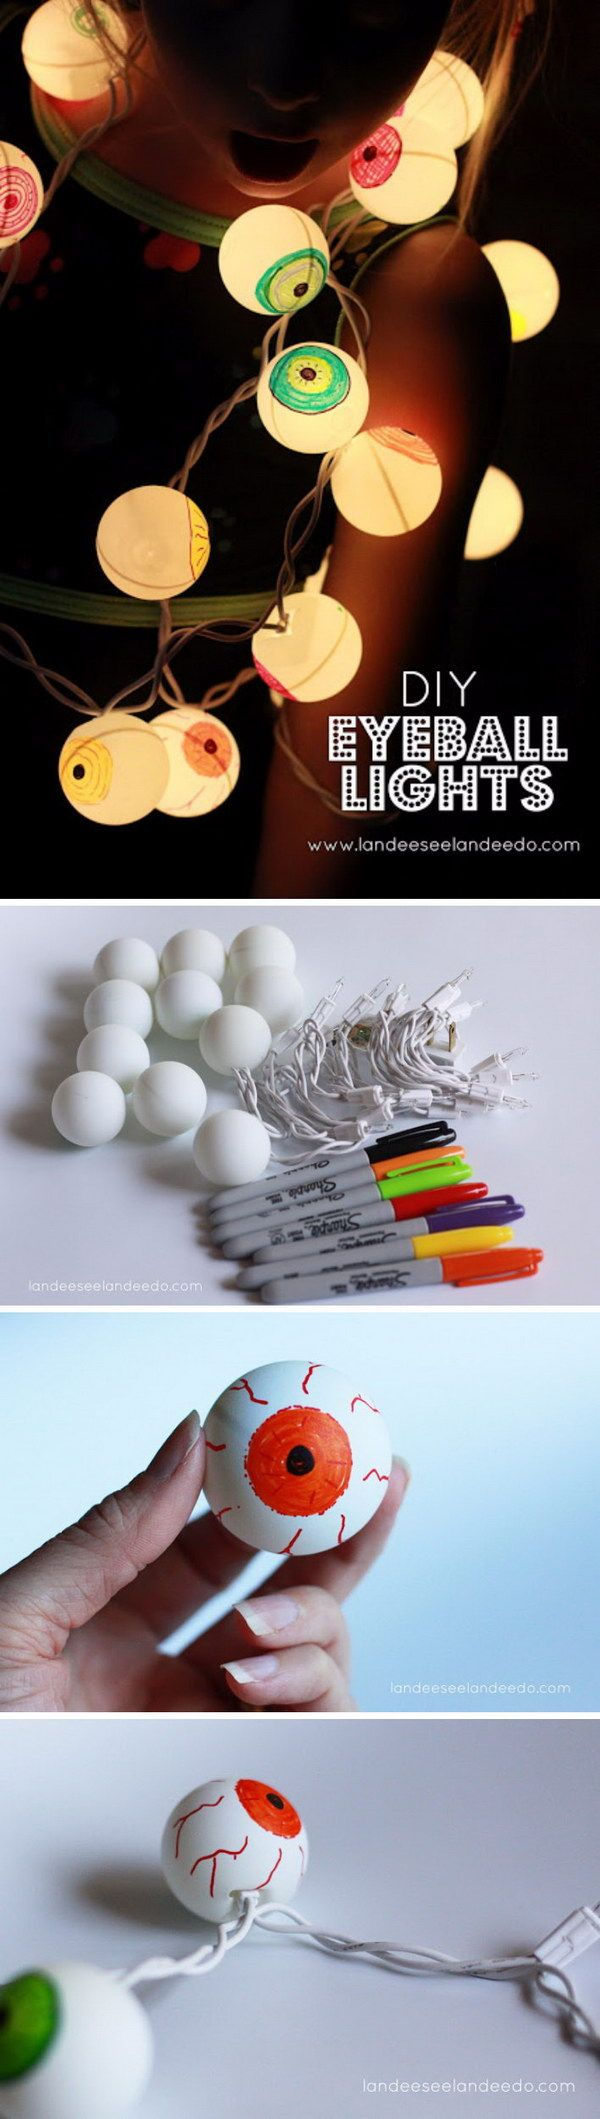 20+ Fun and Easy DIY Halloween Decorating Projects Lights - Homemade Halloween Decorations